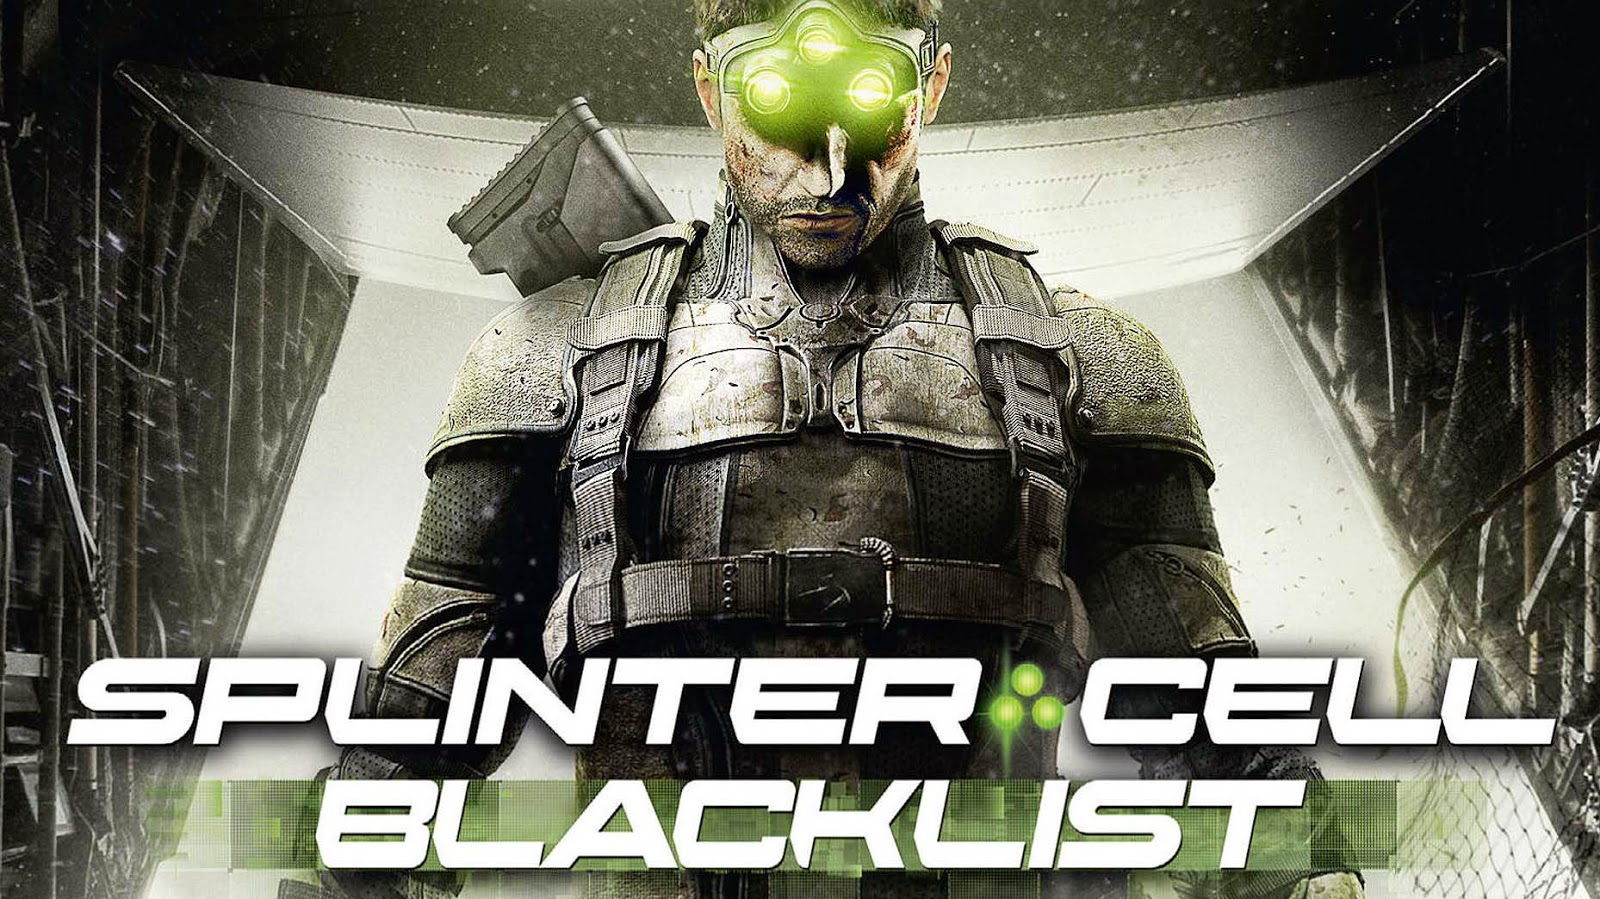 Splinter Cell Black list